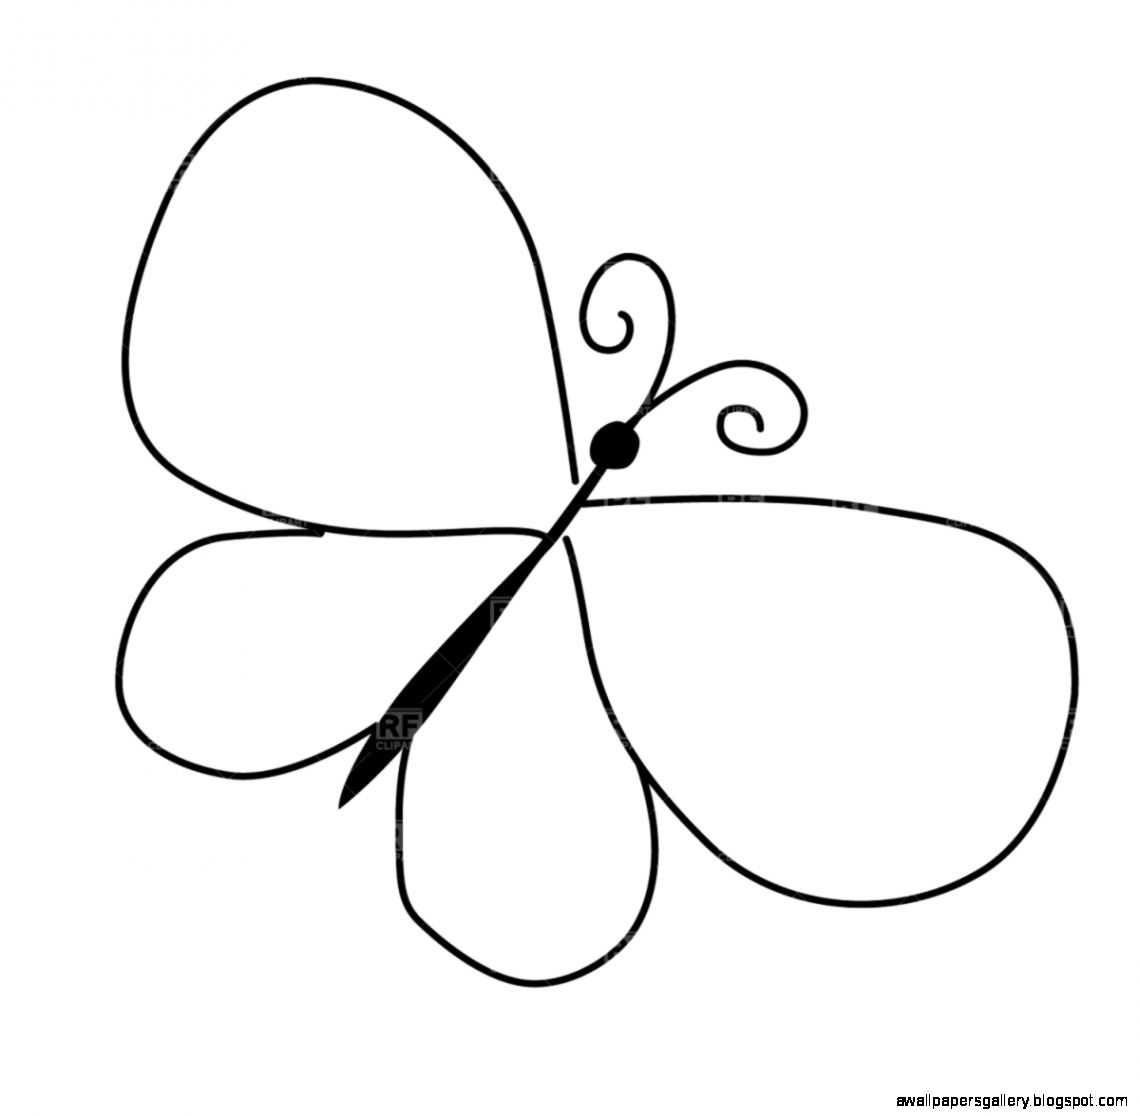 Butterfly outline easy. Clipart wallpapers gallery